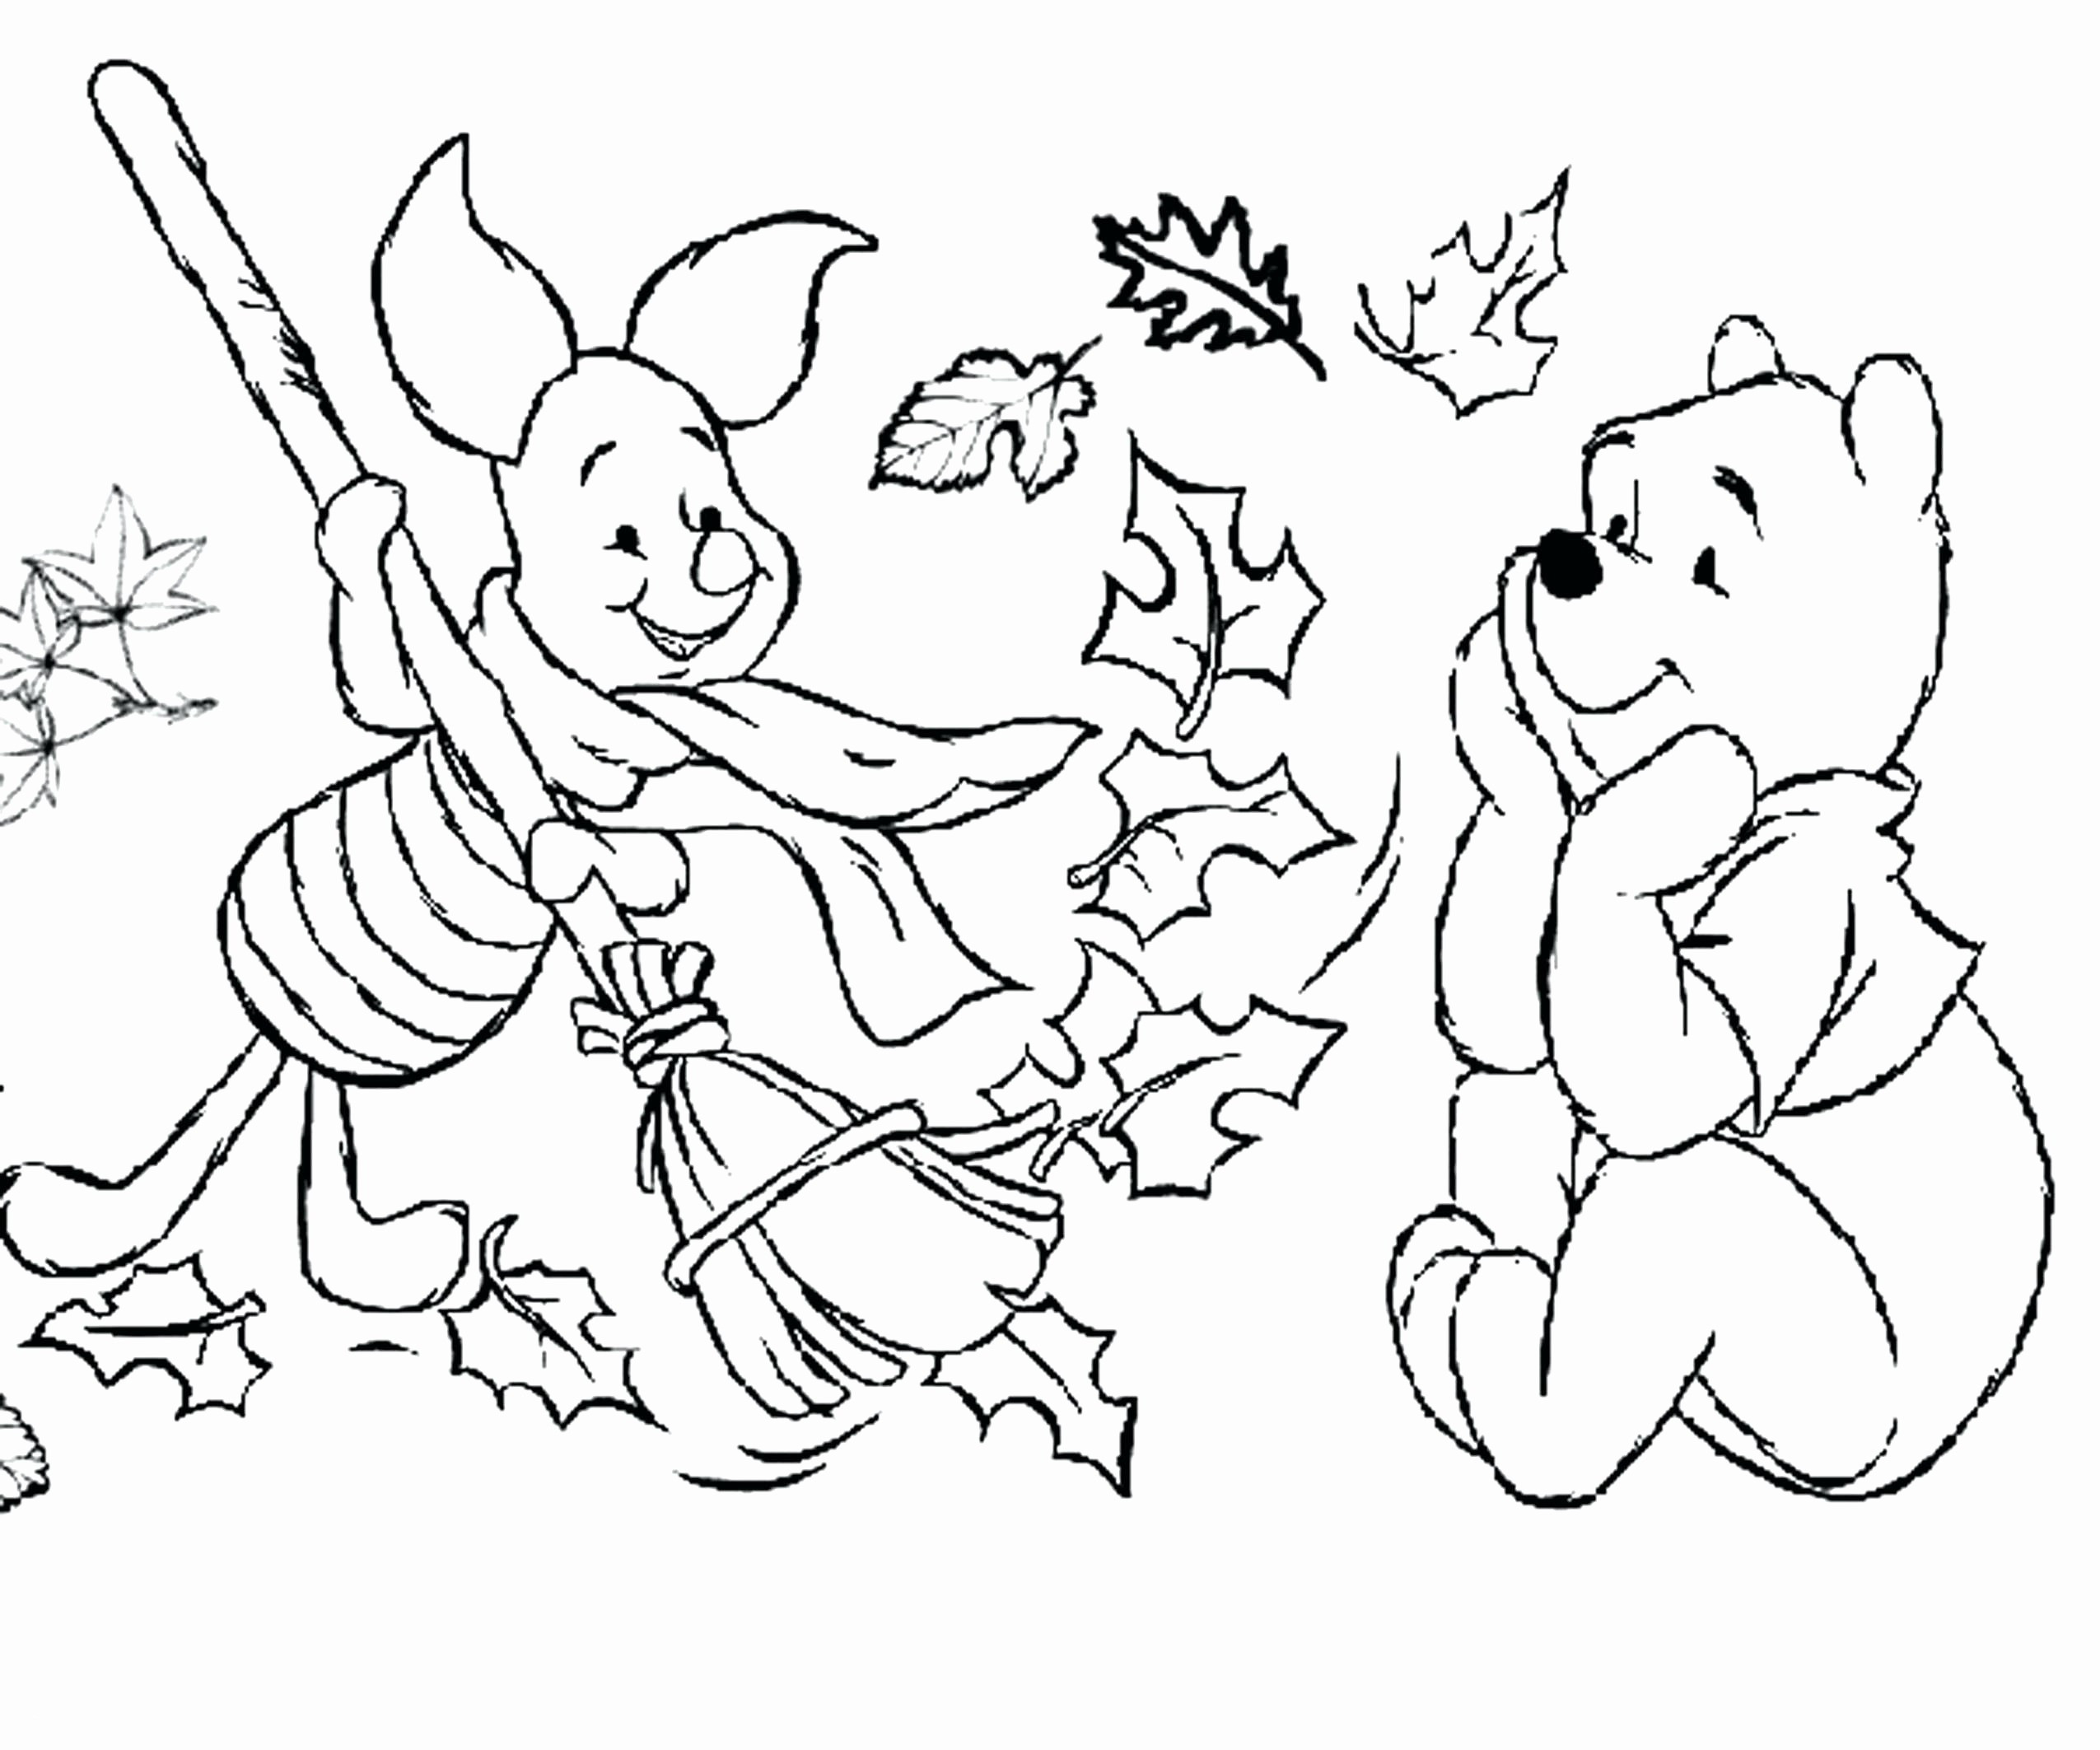 Coloring Pages ~ Free Fall Coloring Sheets Funny Autumn Day Pages - Free Printable Fall Coloring Pages